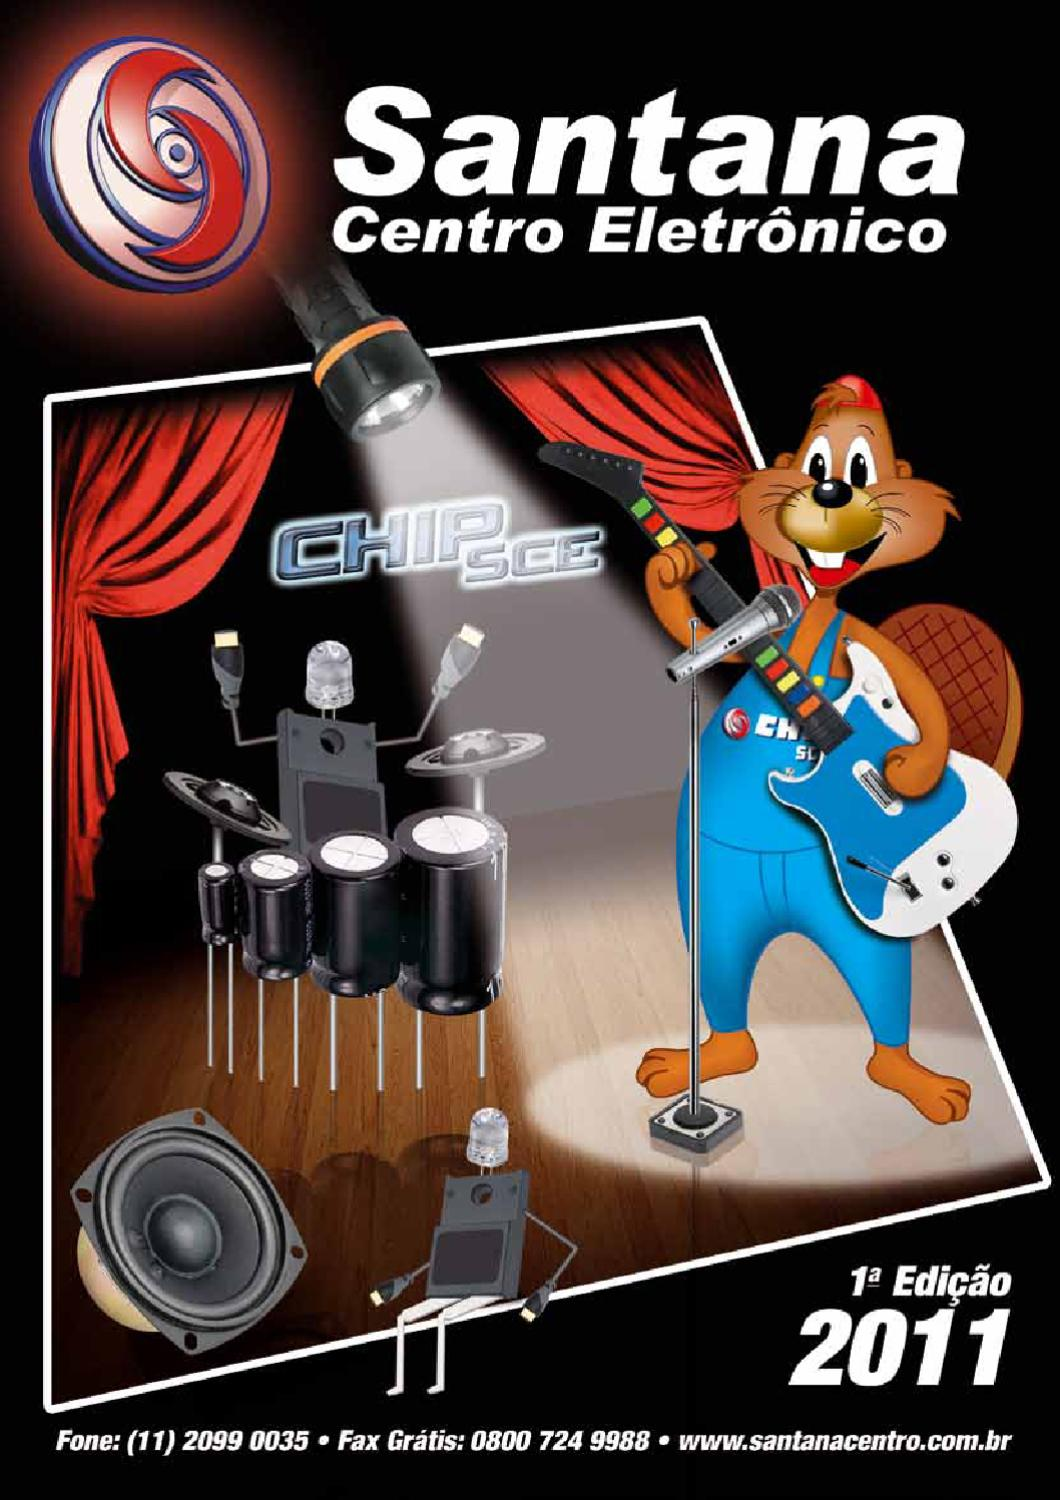 Catlogo Santana Centro 2011 By Eletrnico Issuu 30w Vhf Fm Amplifier For 88 8211 108 Mhz With Blf245 Mosfet